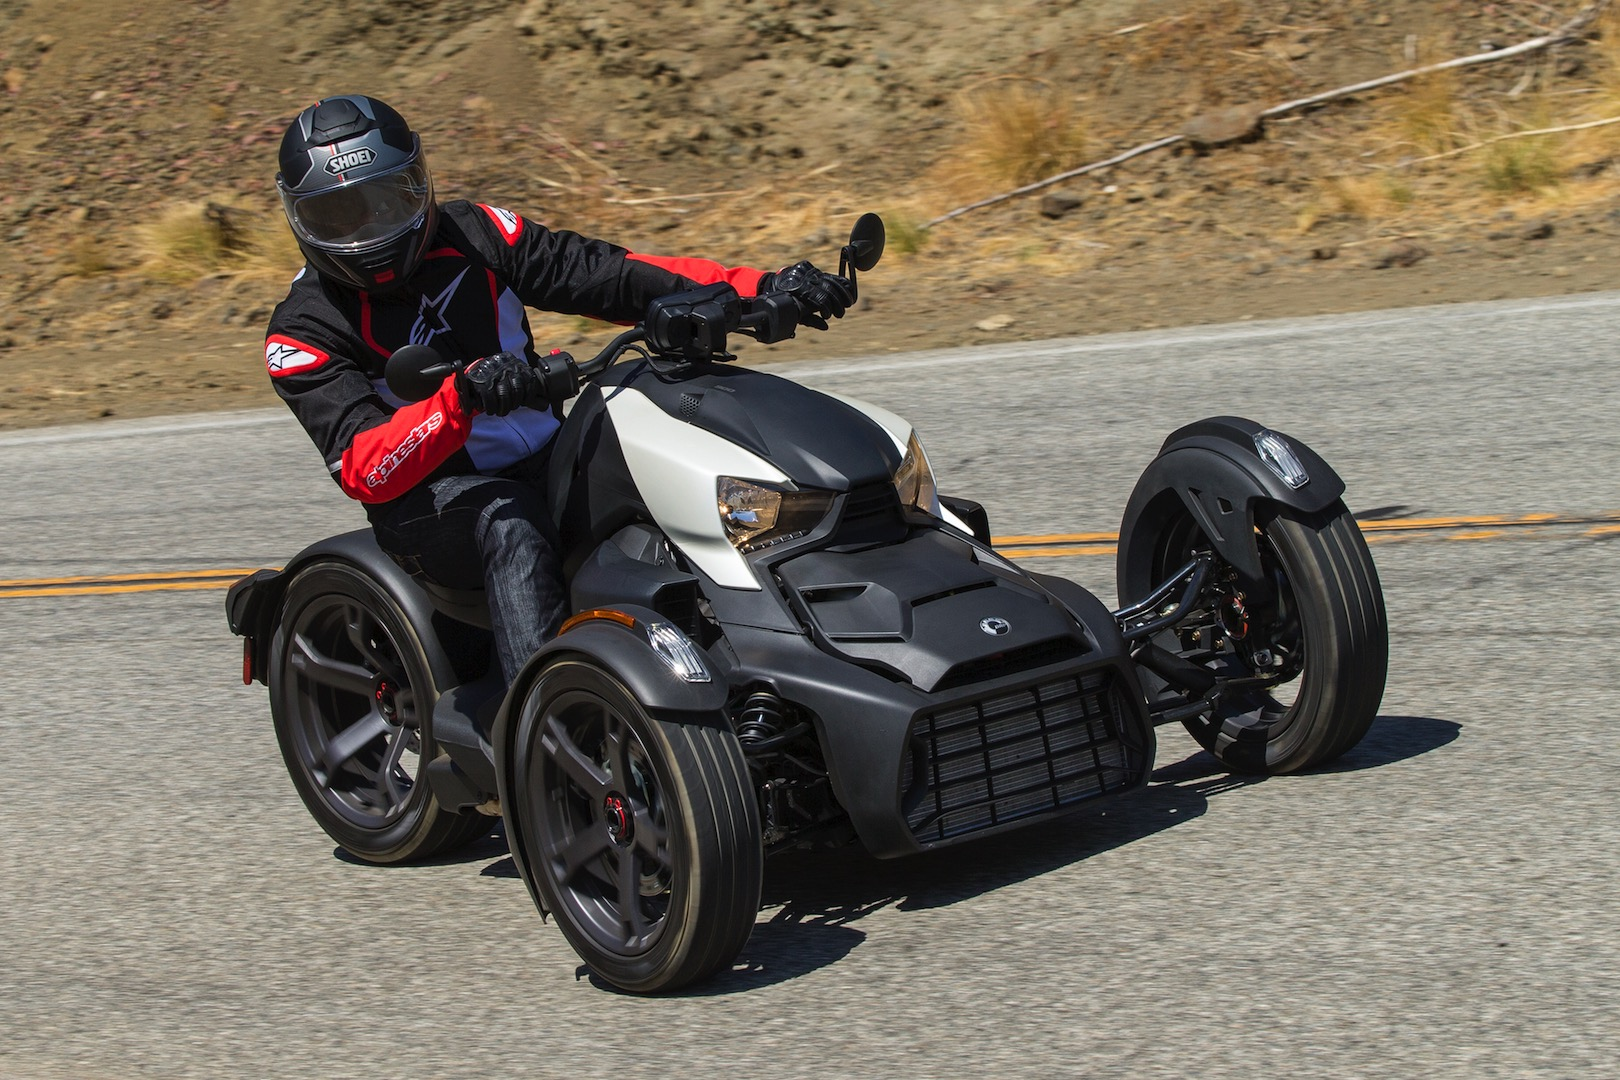 2019 Can-Am Ryker Review (20 Fast Facts)